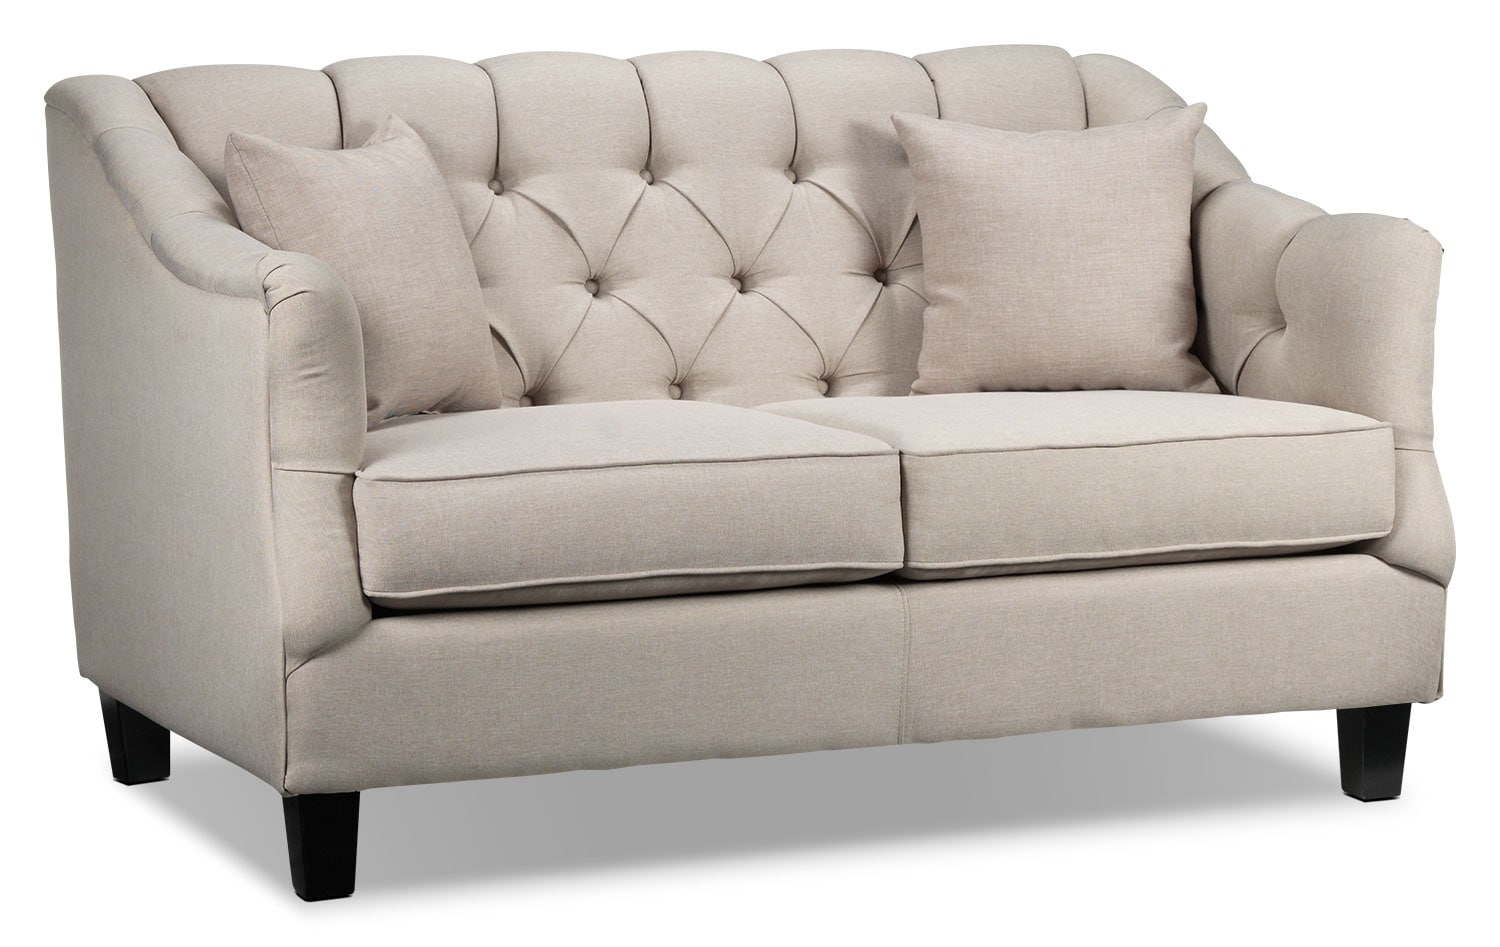 Living Room Furniture - Auden Loveseat - Beige